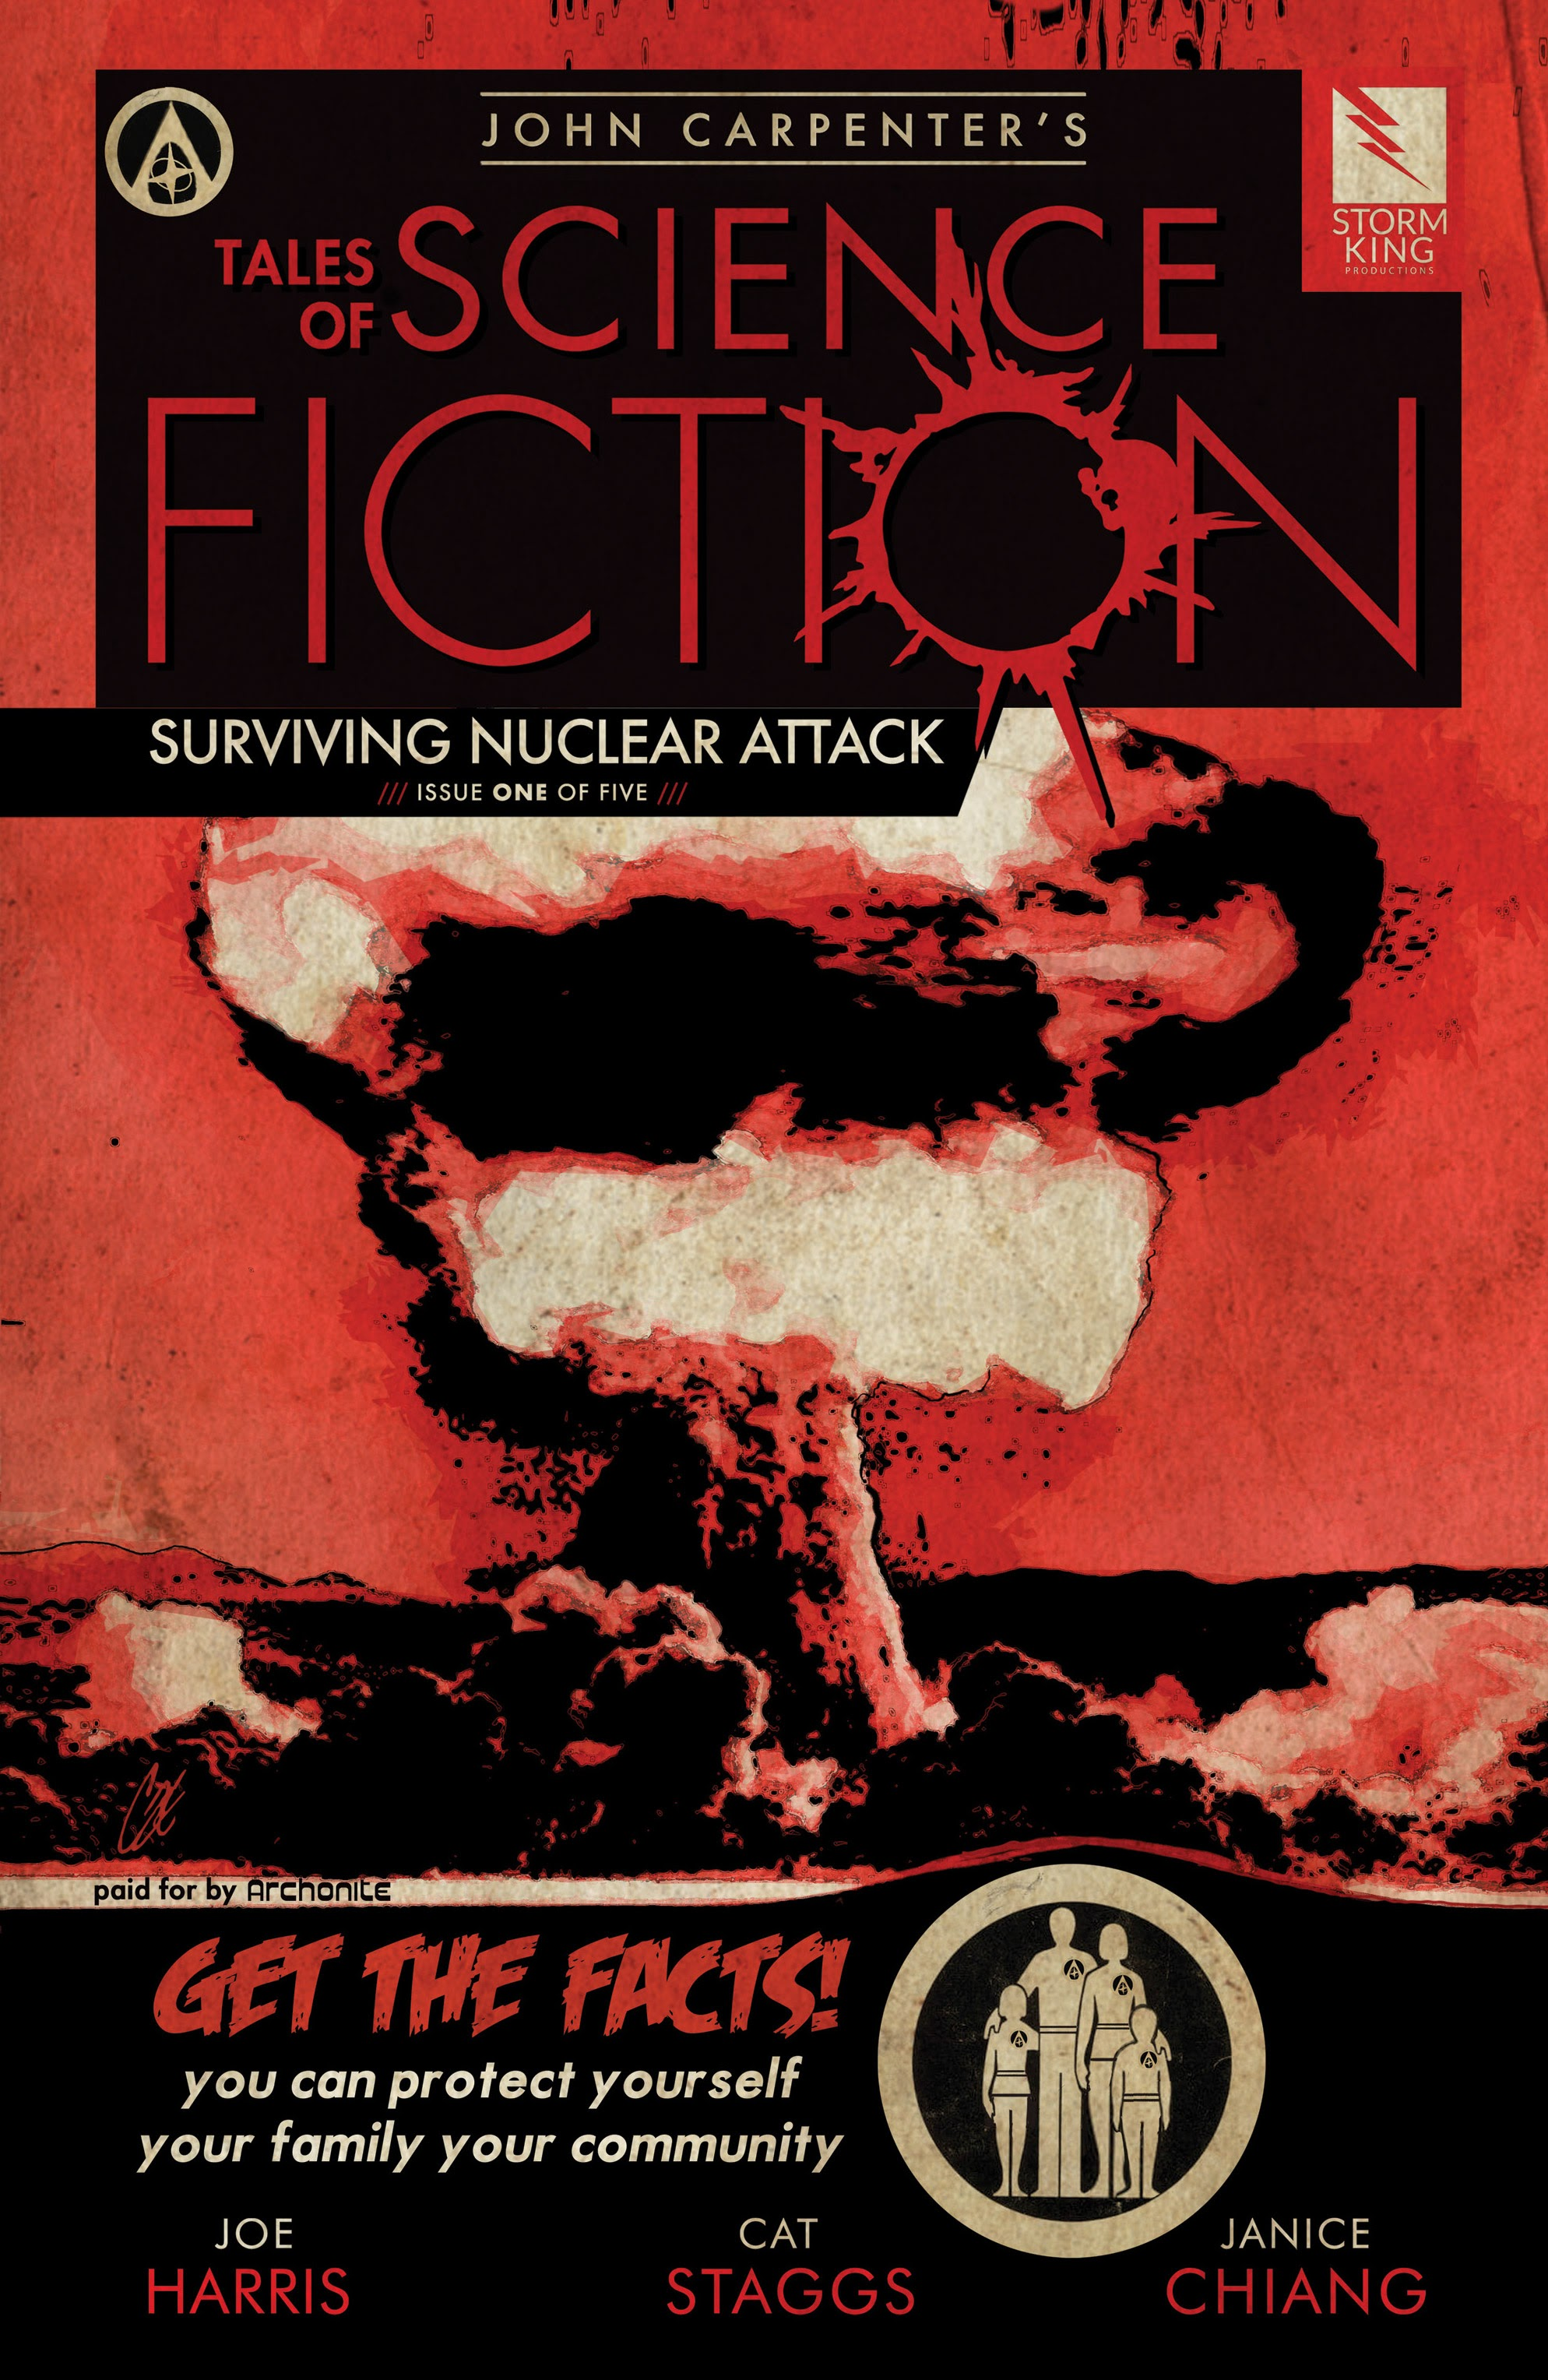 John Carpenters Tales of Science Fiction: Surviving Nuclear Attack 1 Page 1